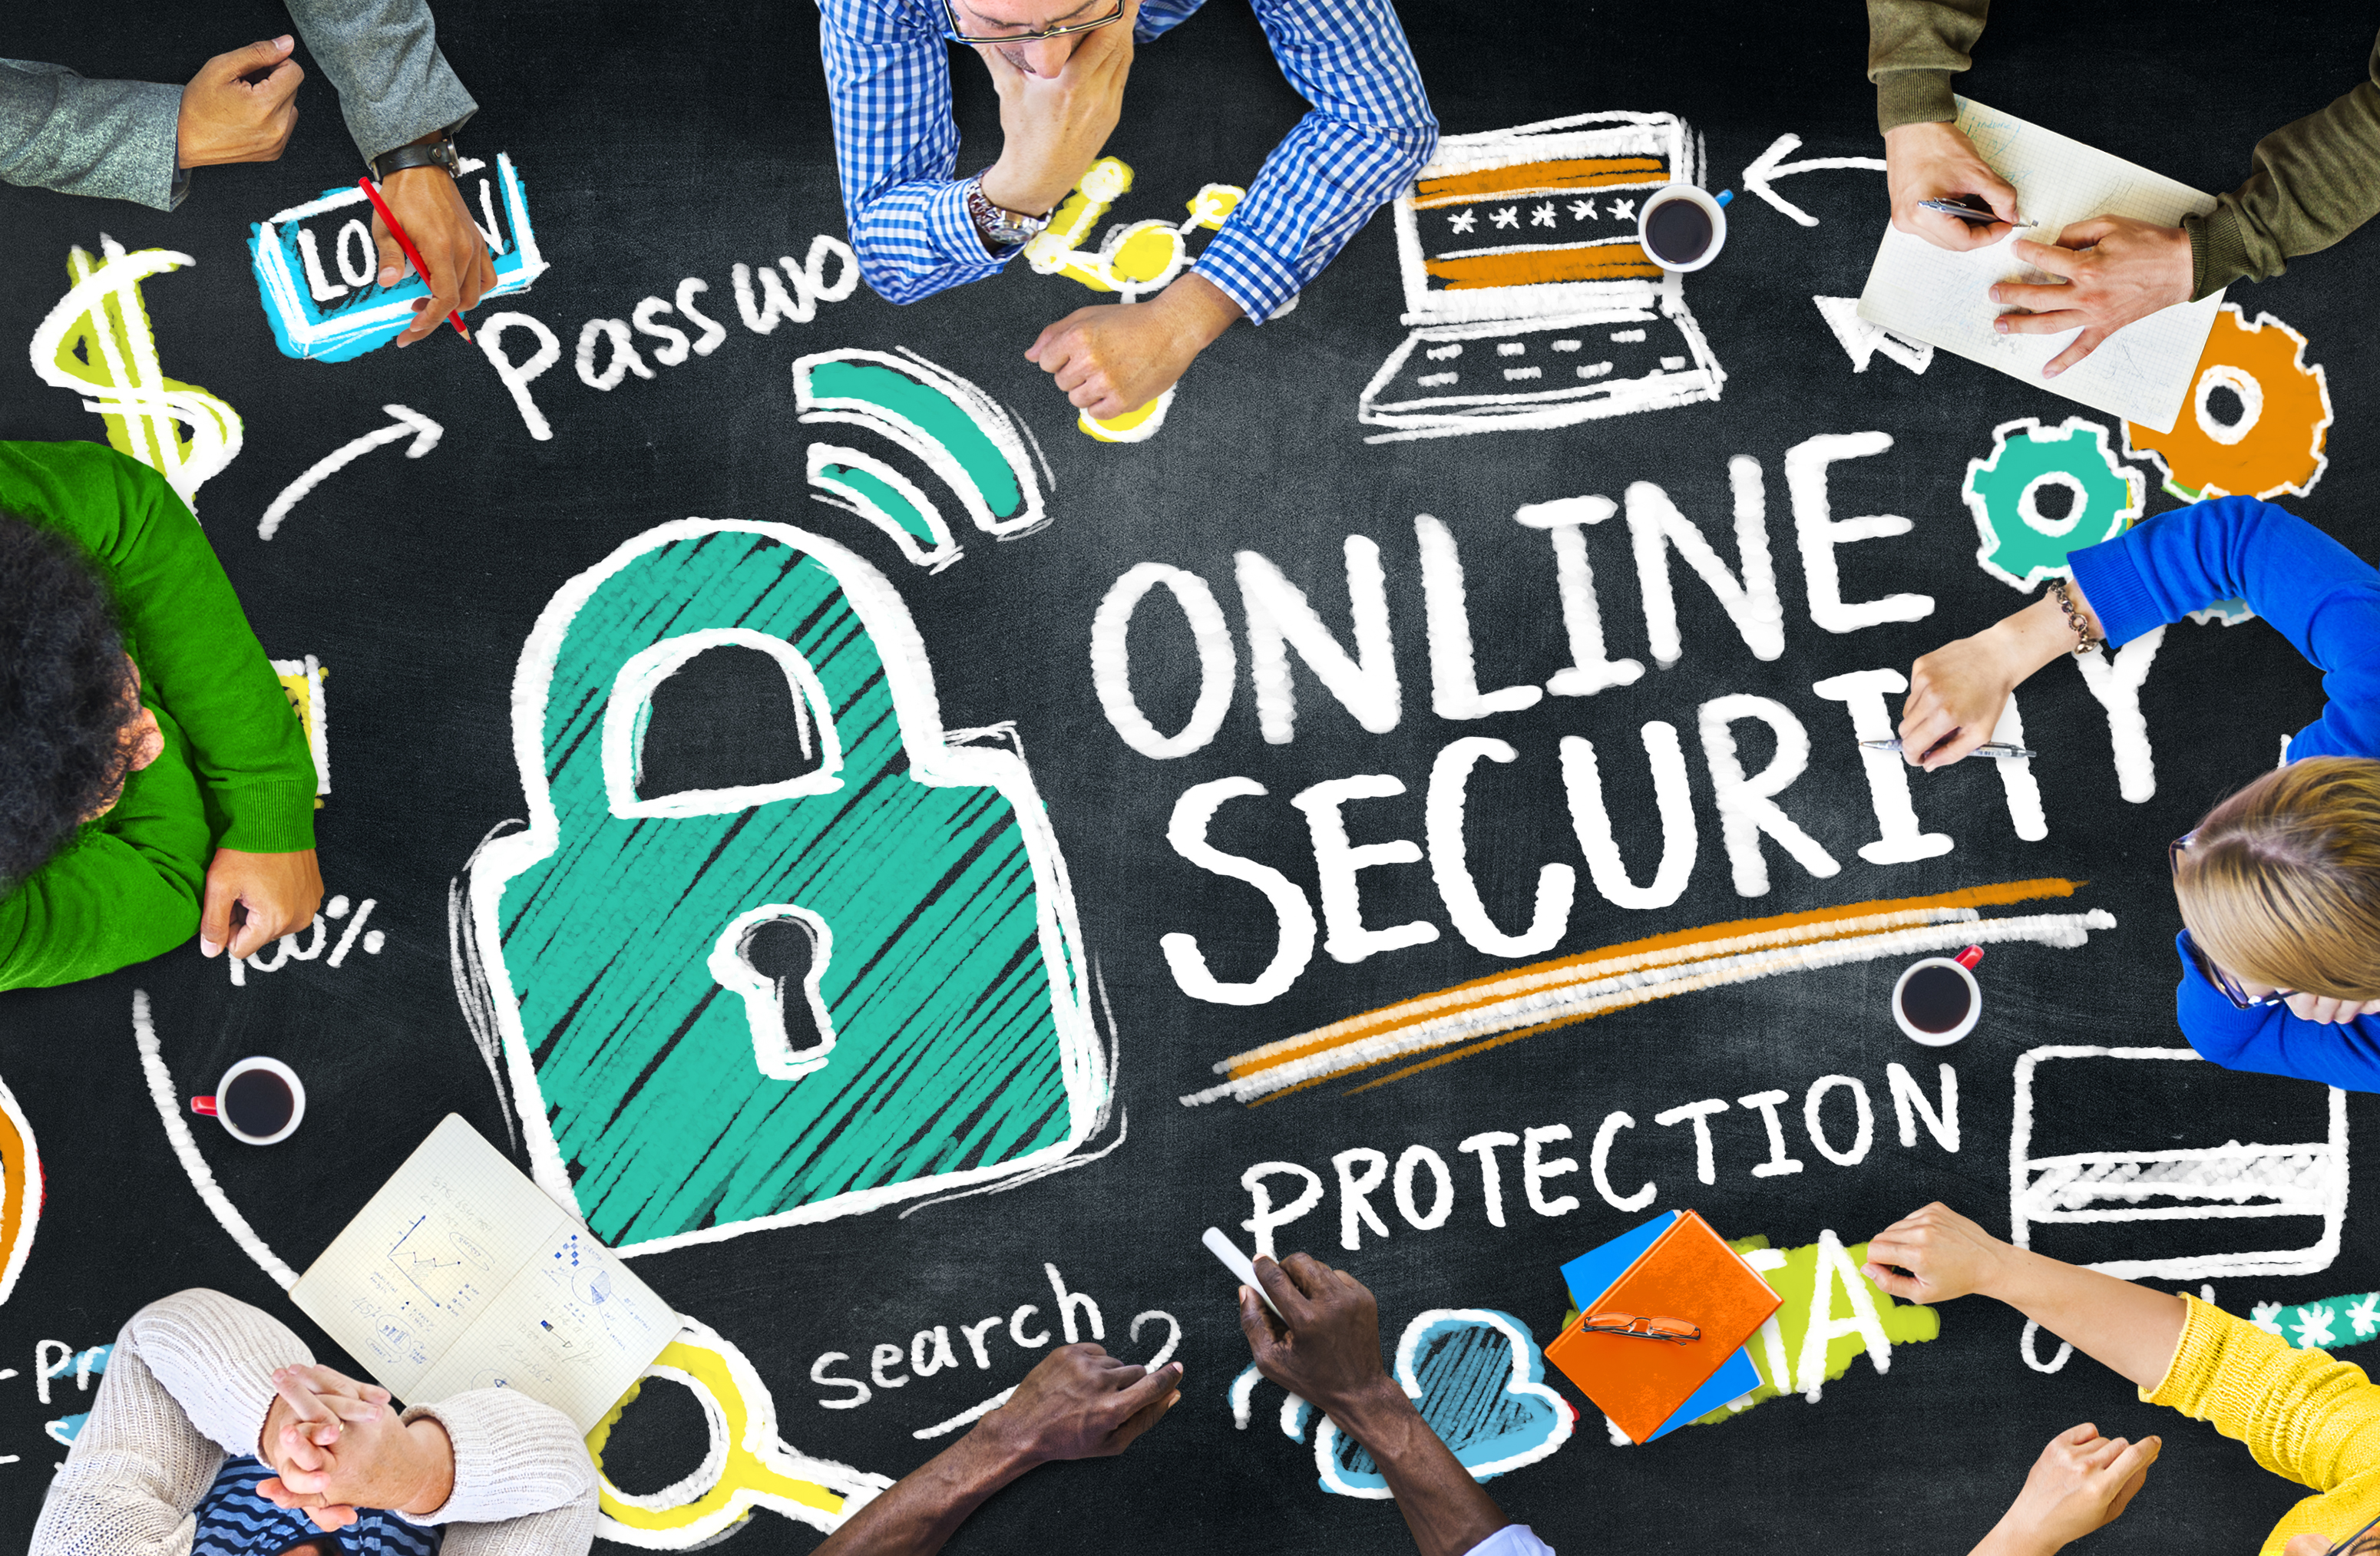 Online Security Protection Internet Safety Education Learning Concept